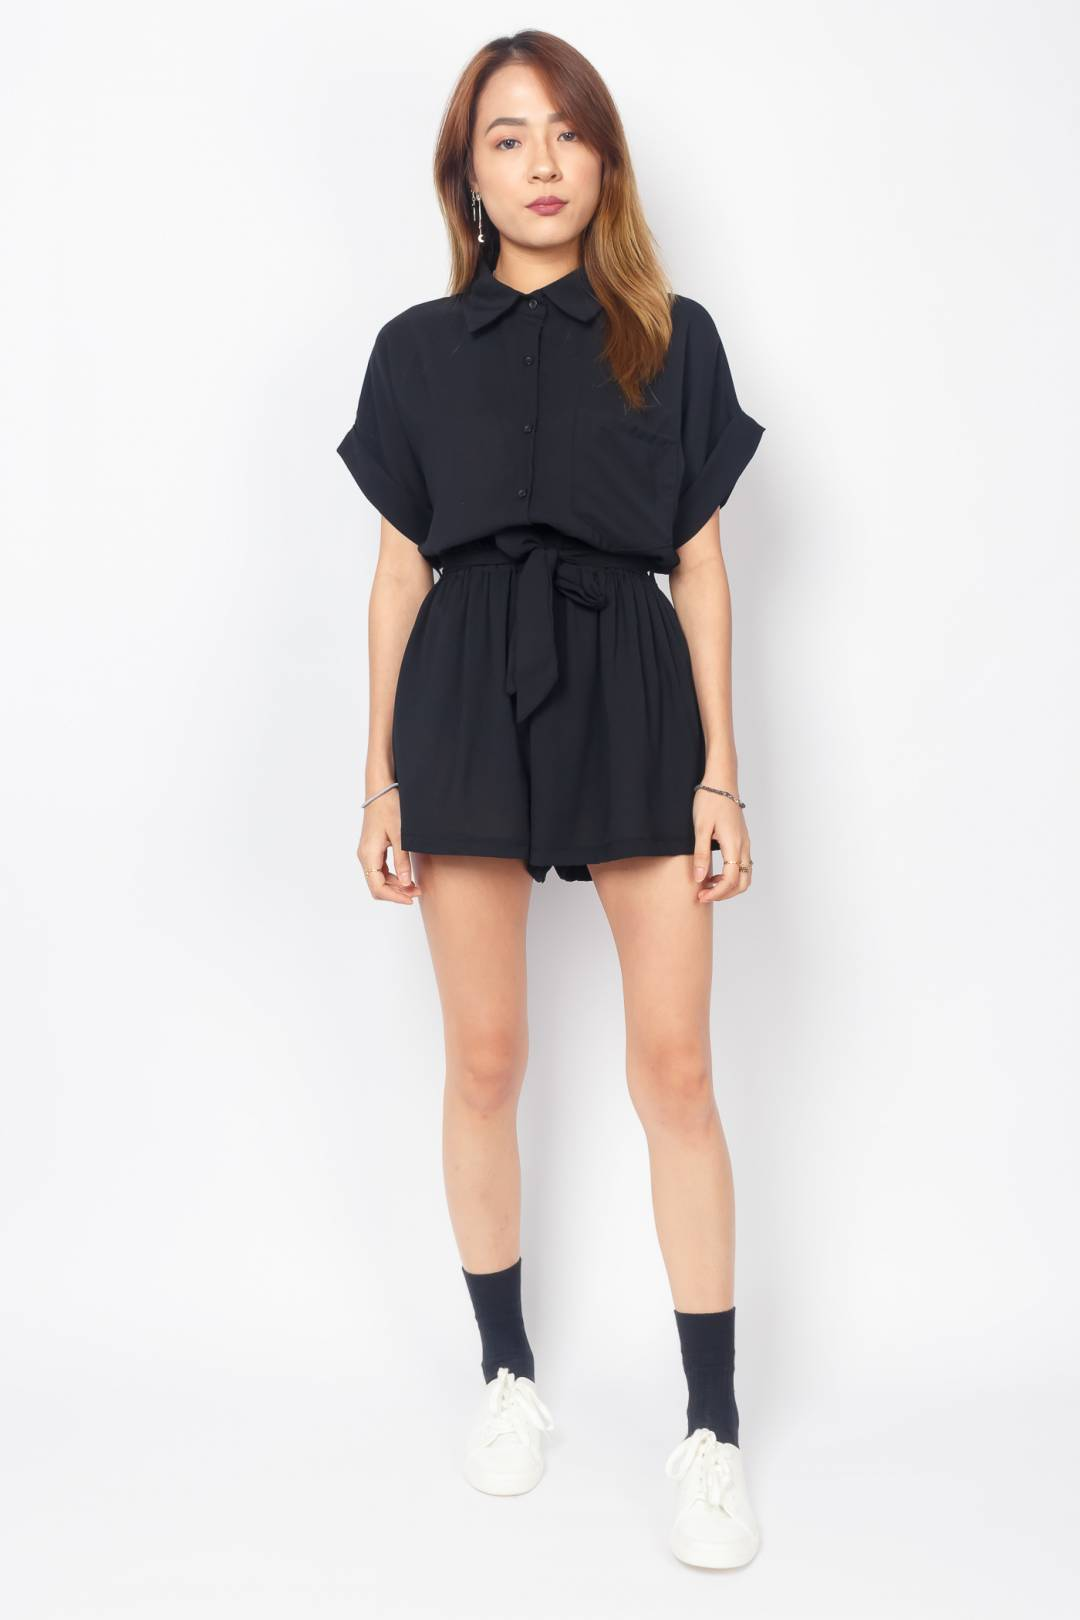 KYLEE Two-Piece Collared Romper (Black)